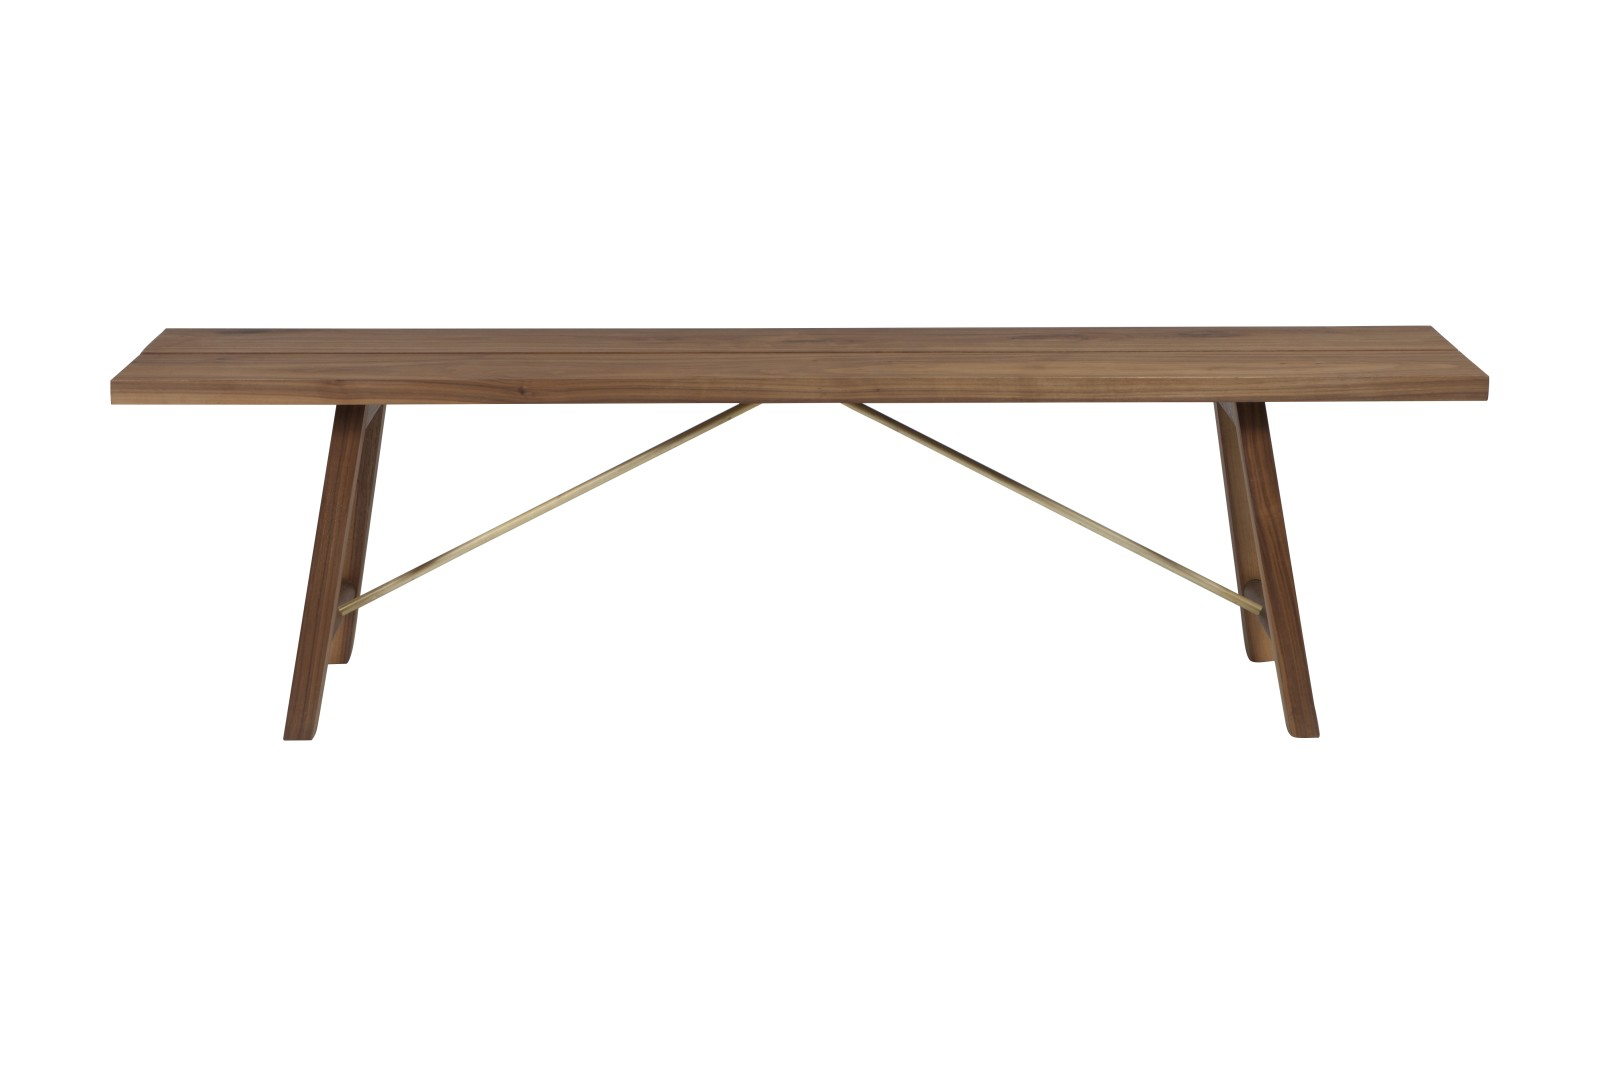 Seating Bench Two Walnut, 160